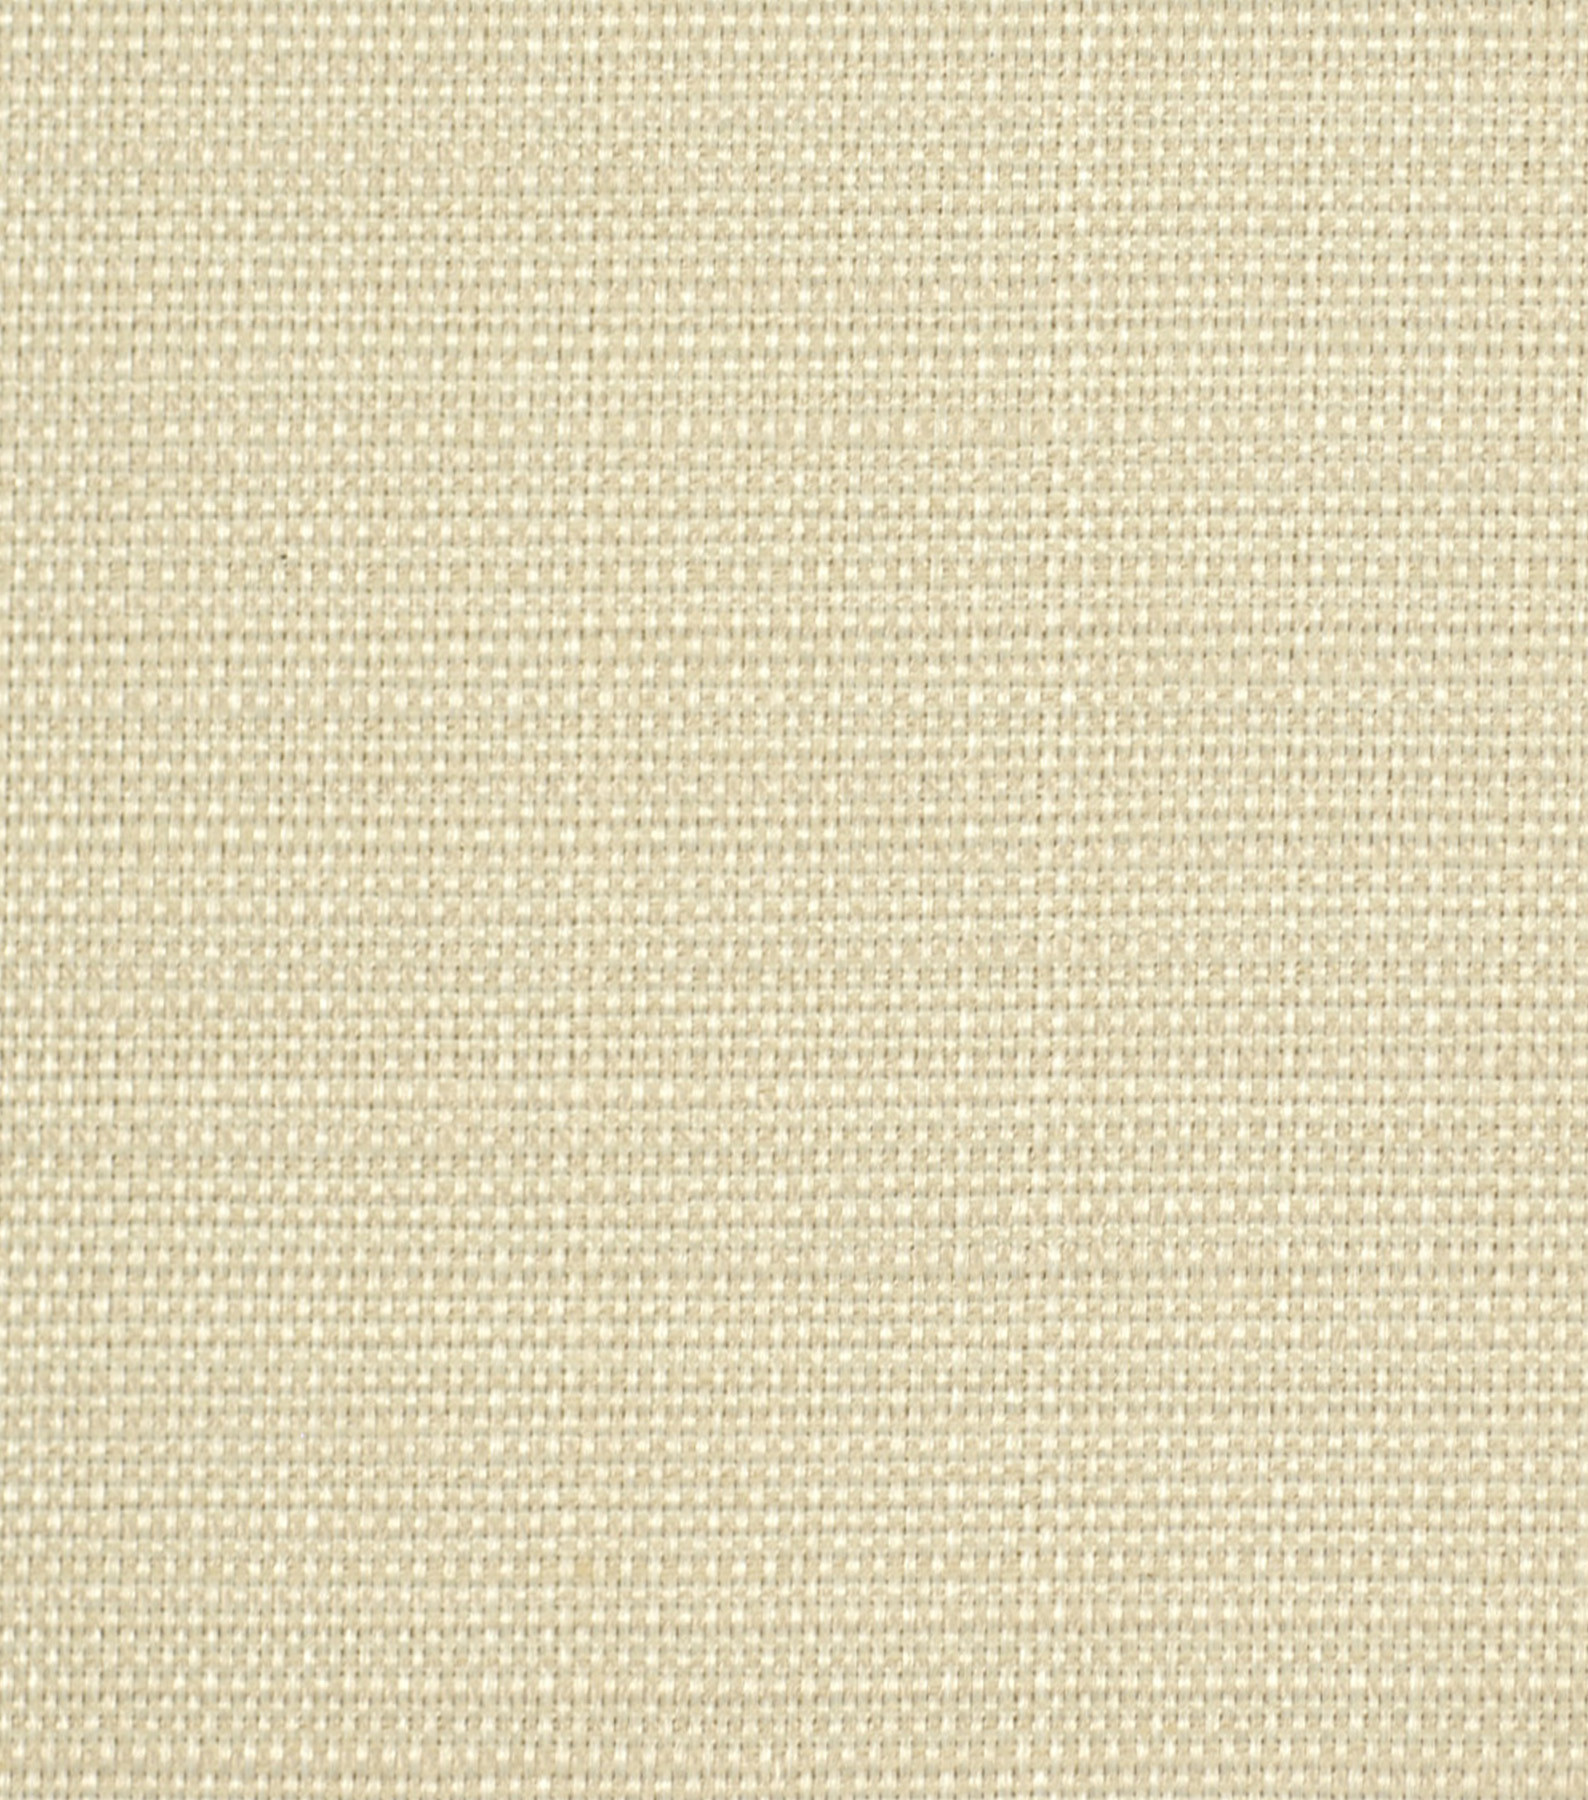 Home Decor 8\u0022x8\u0022 Fabric Swatch-Signature Series Texturetake White Sand